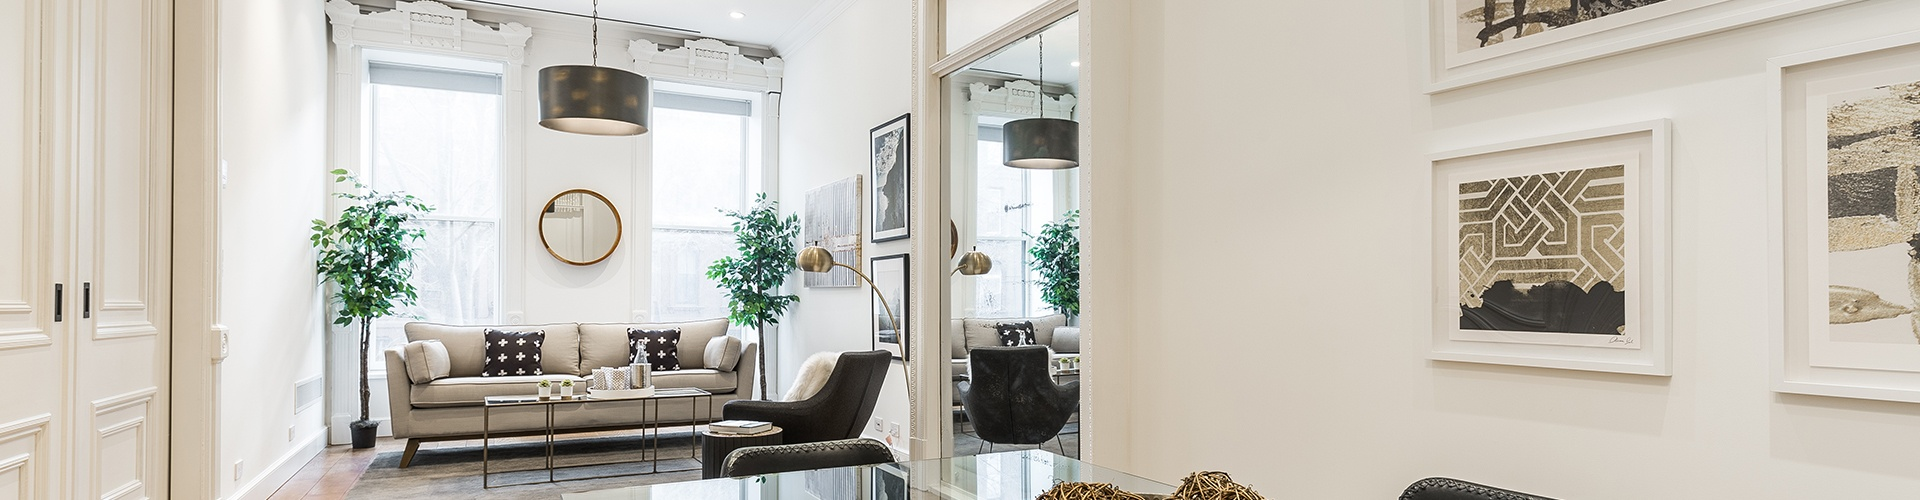 New Year, New Trends: Which Interior Design Trends are Rising to the Top in 2018?